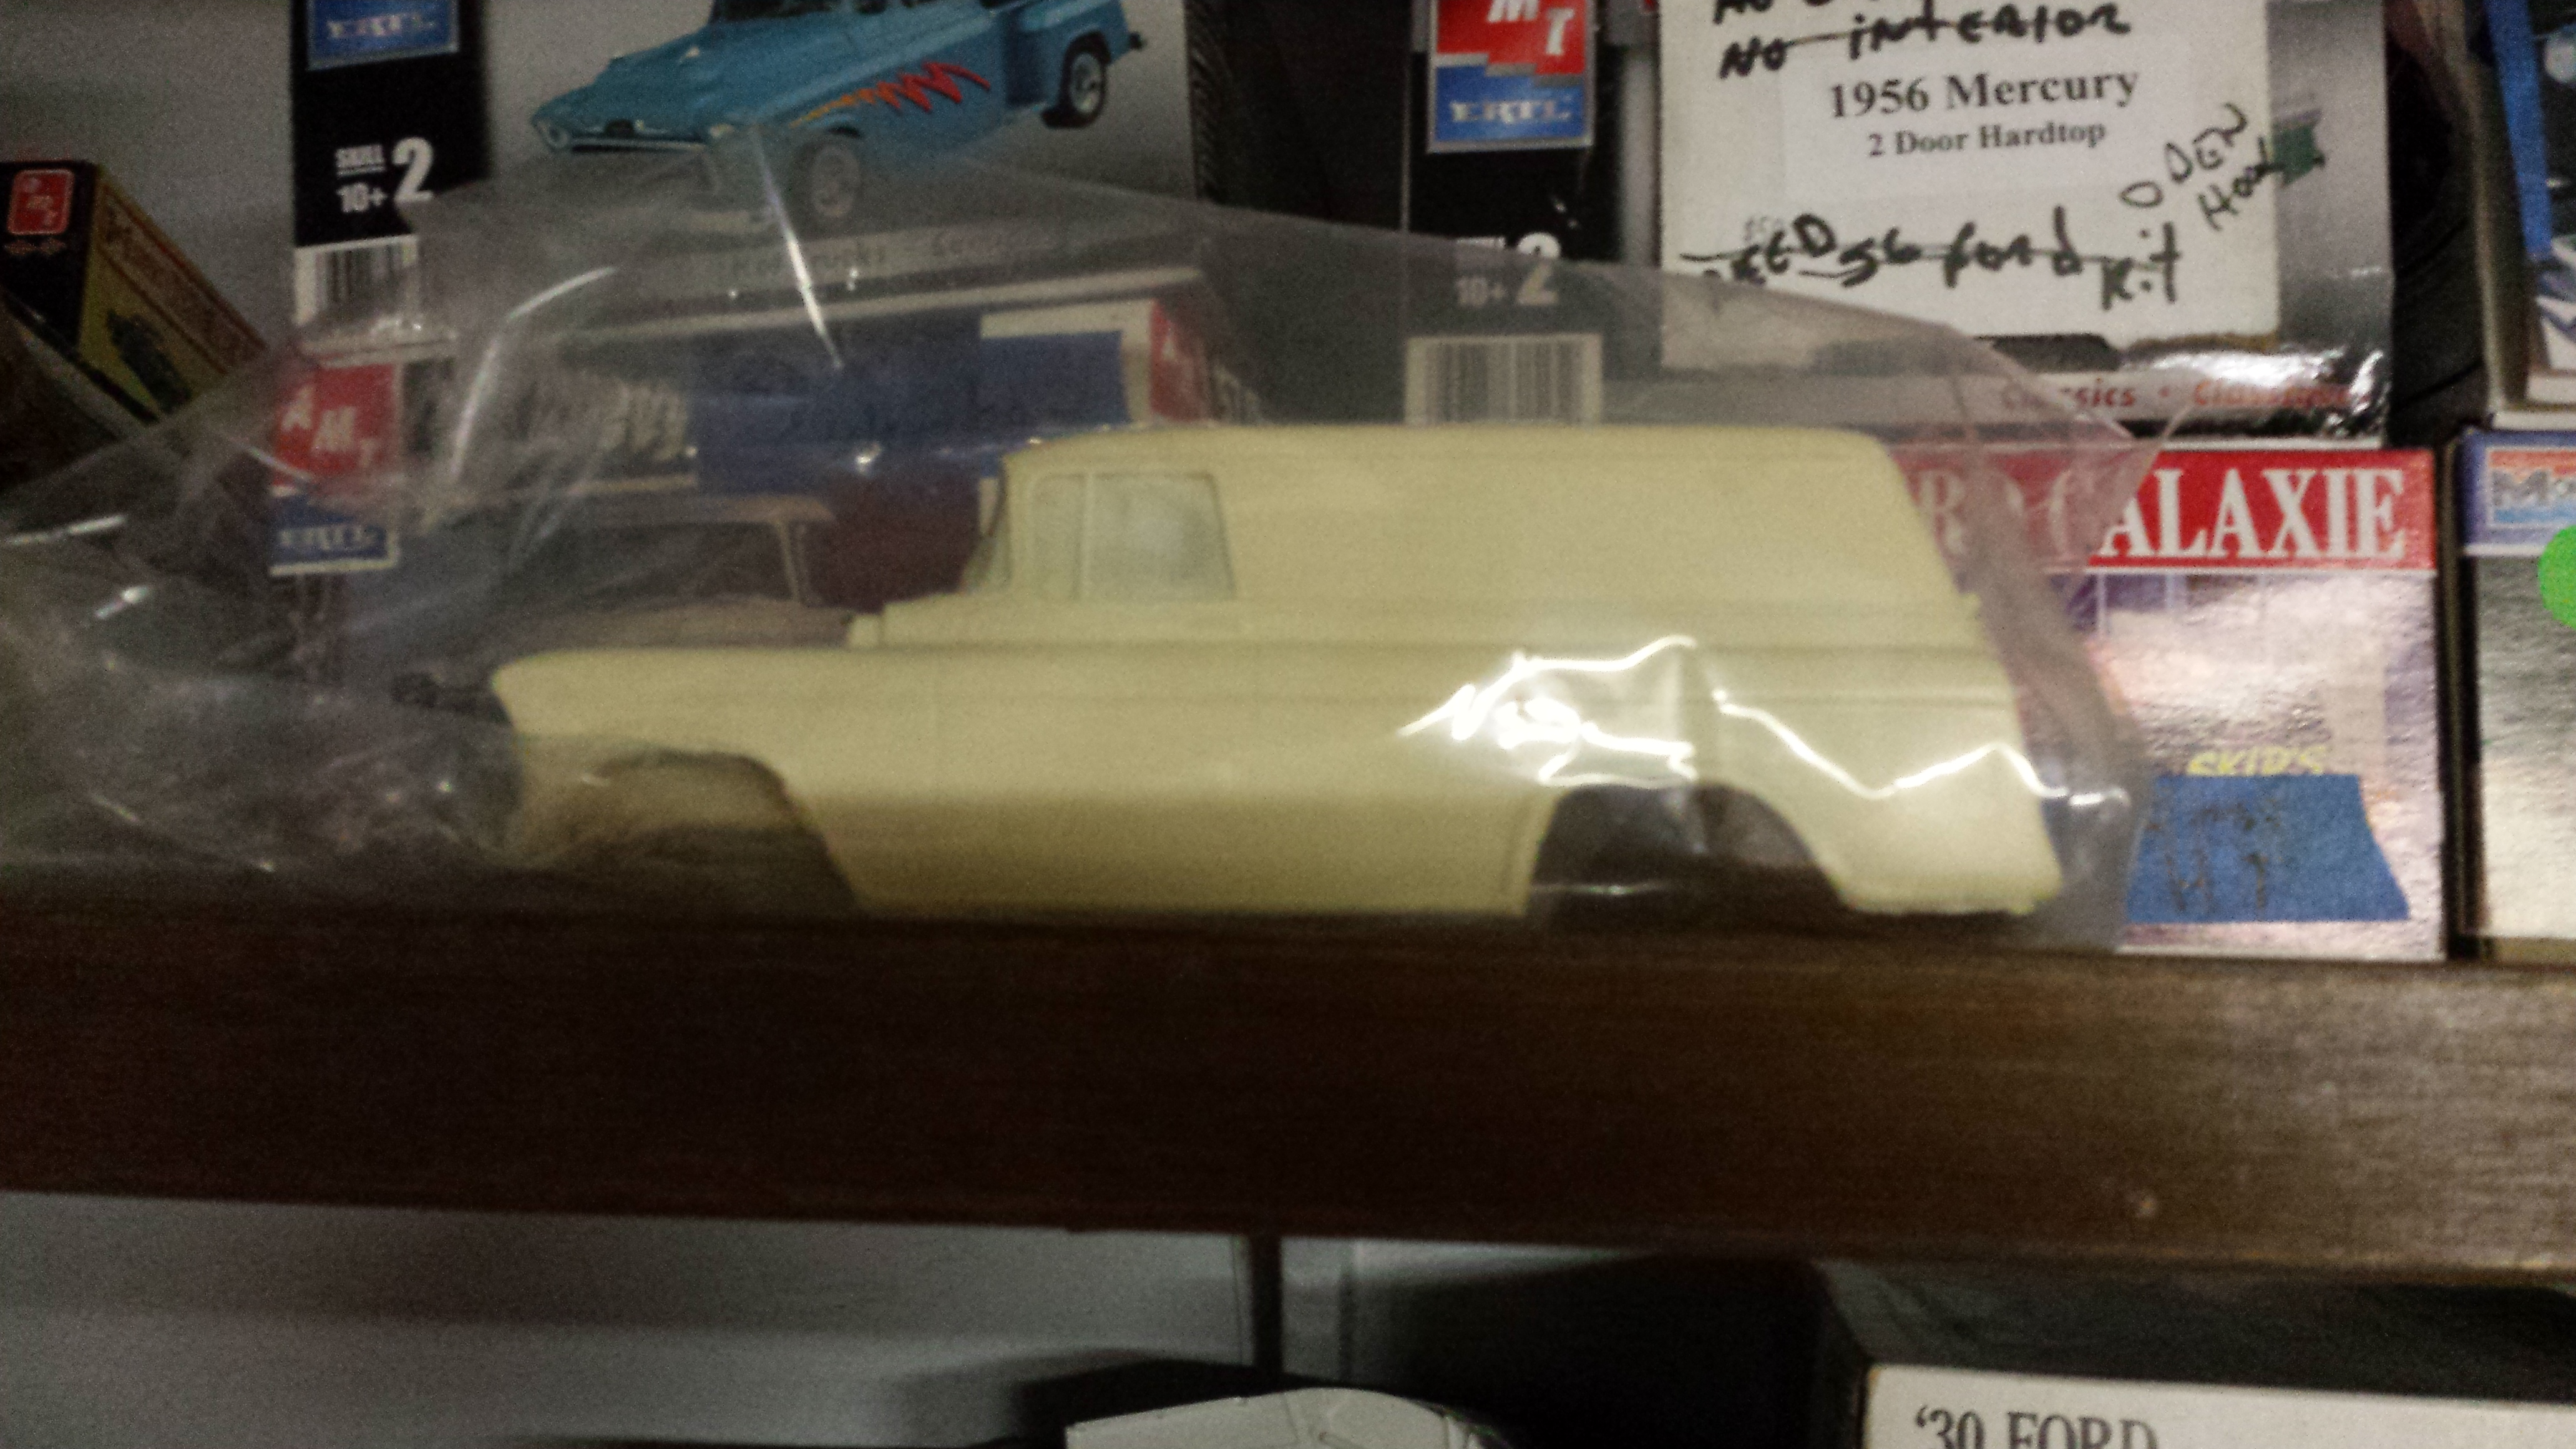 55 chevy panel and 57 suburban resin bodies - Under Glass - Model